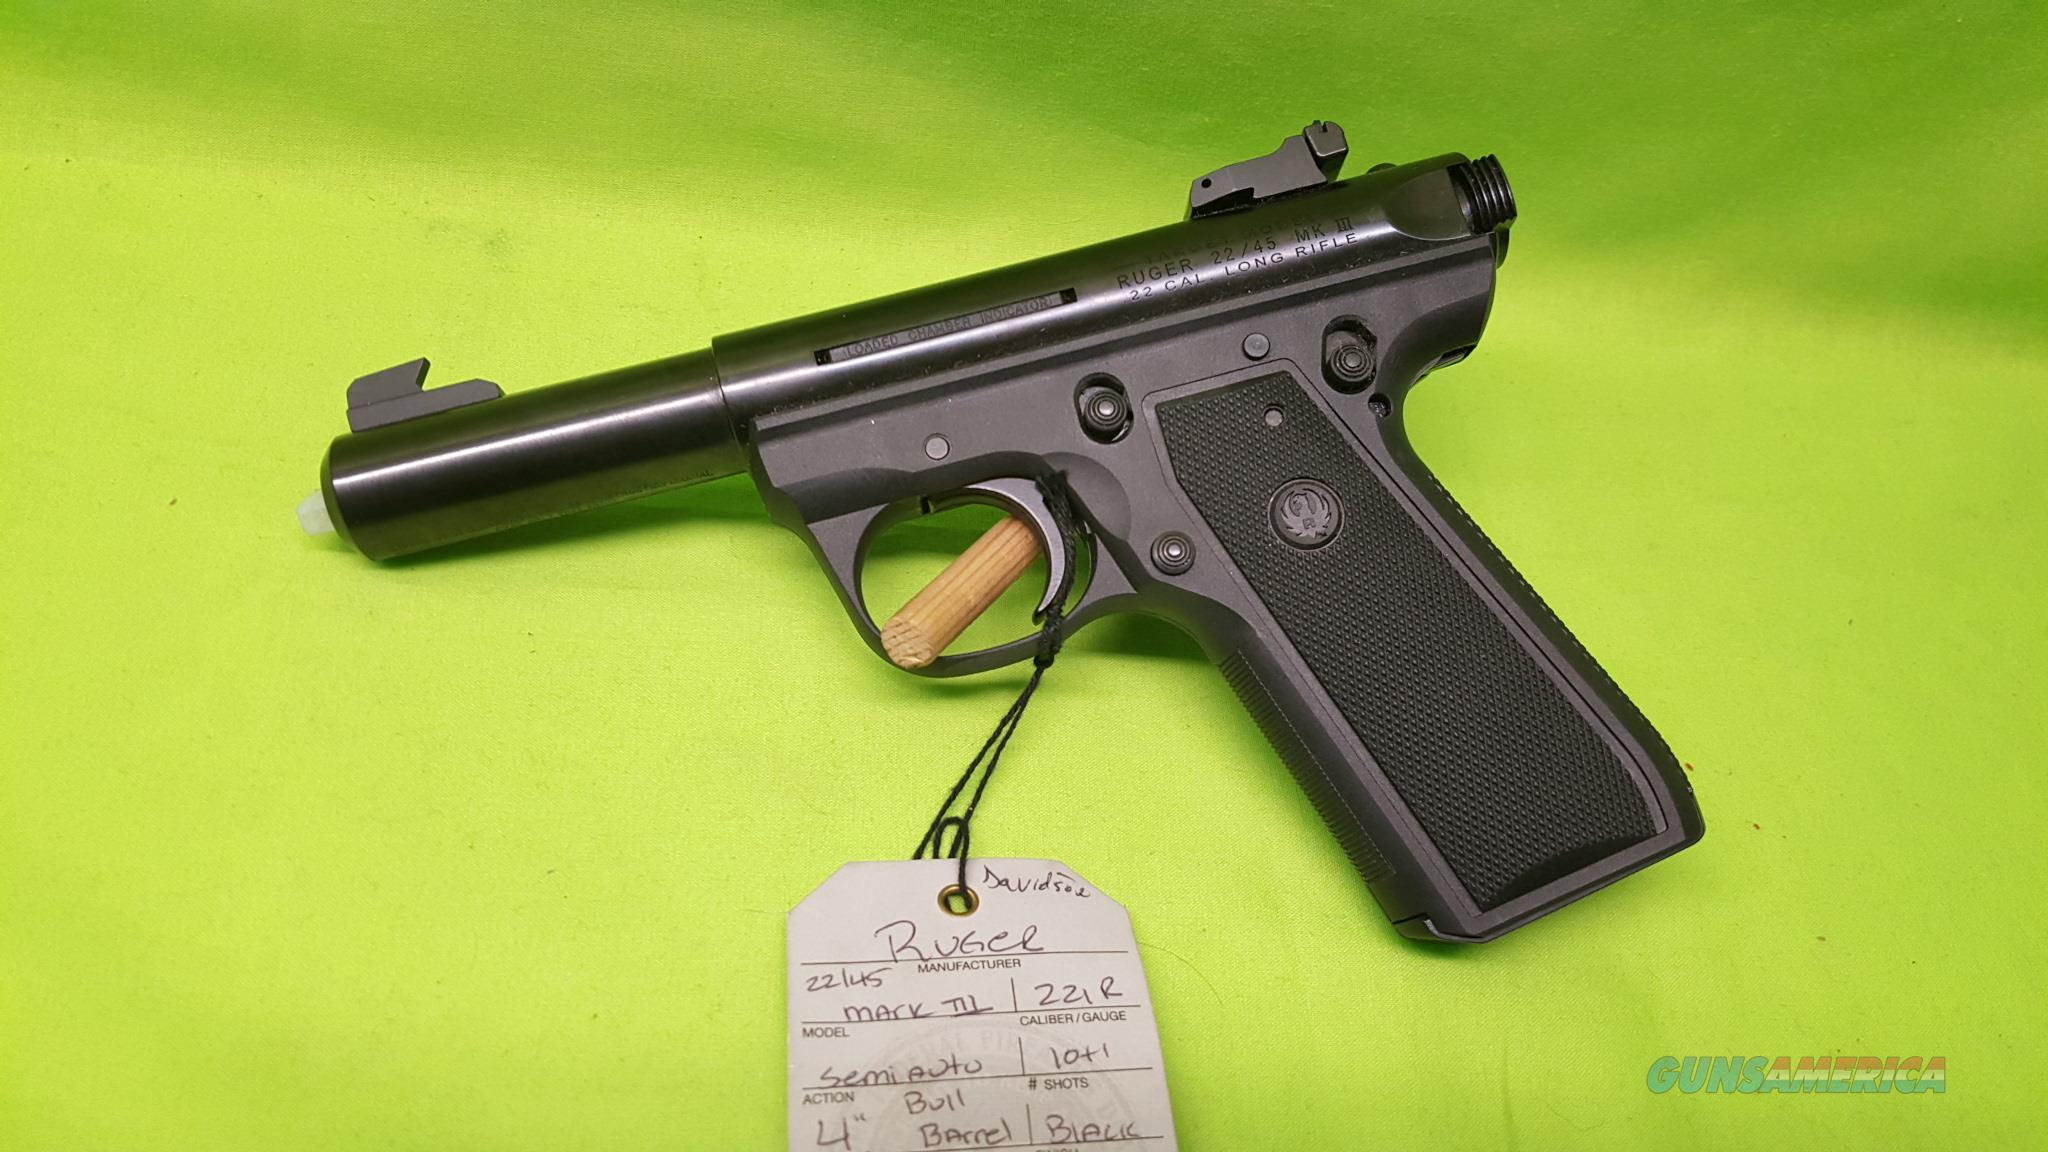 Ruger 22 45 Mark Iii 22lr 22 Lr 4 Quot Bull 10rd 10 For Sale